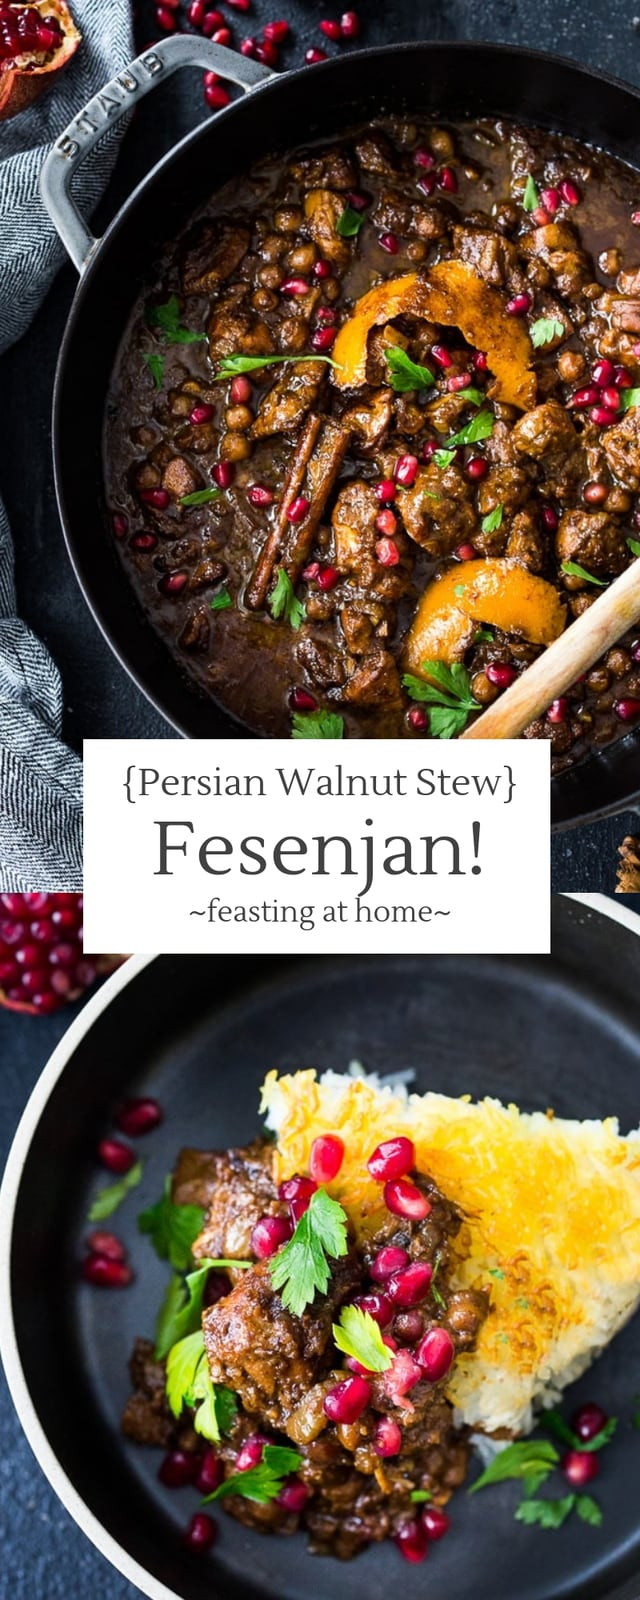 A delicious recipe for Fesenjan, aPersian Walnut Pomegranate Stew with chicken and chickpeas. Earthy, rich and tangy, this is bursting with Middle Eastern Flavor! #persianstew #fesenjan #persianrecipes #persiancchicken #middleeastern #chicken #chickpeastew